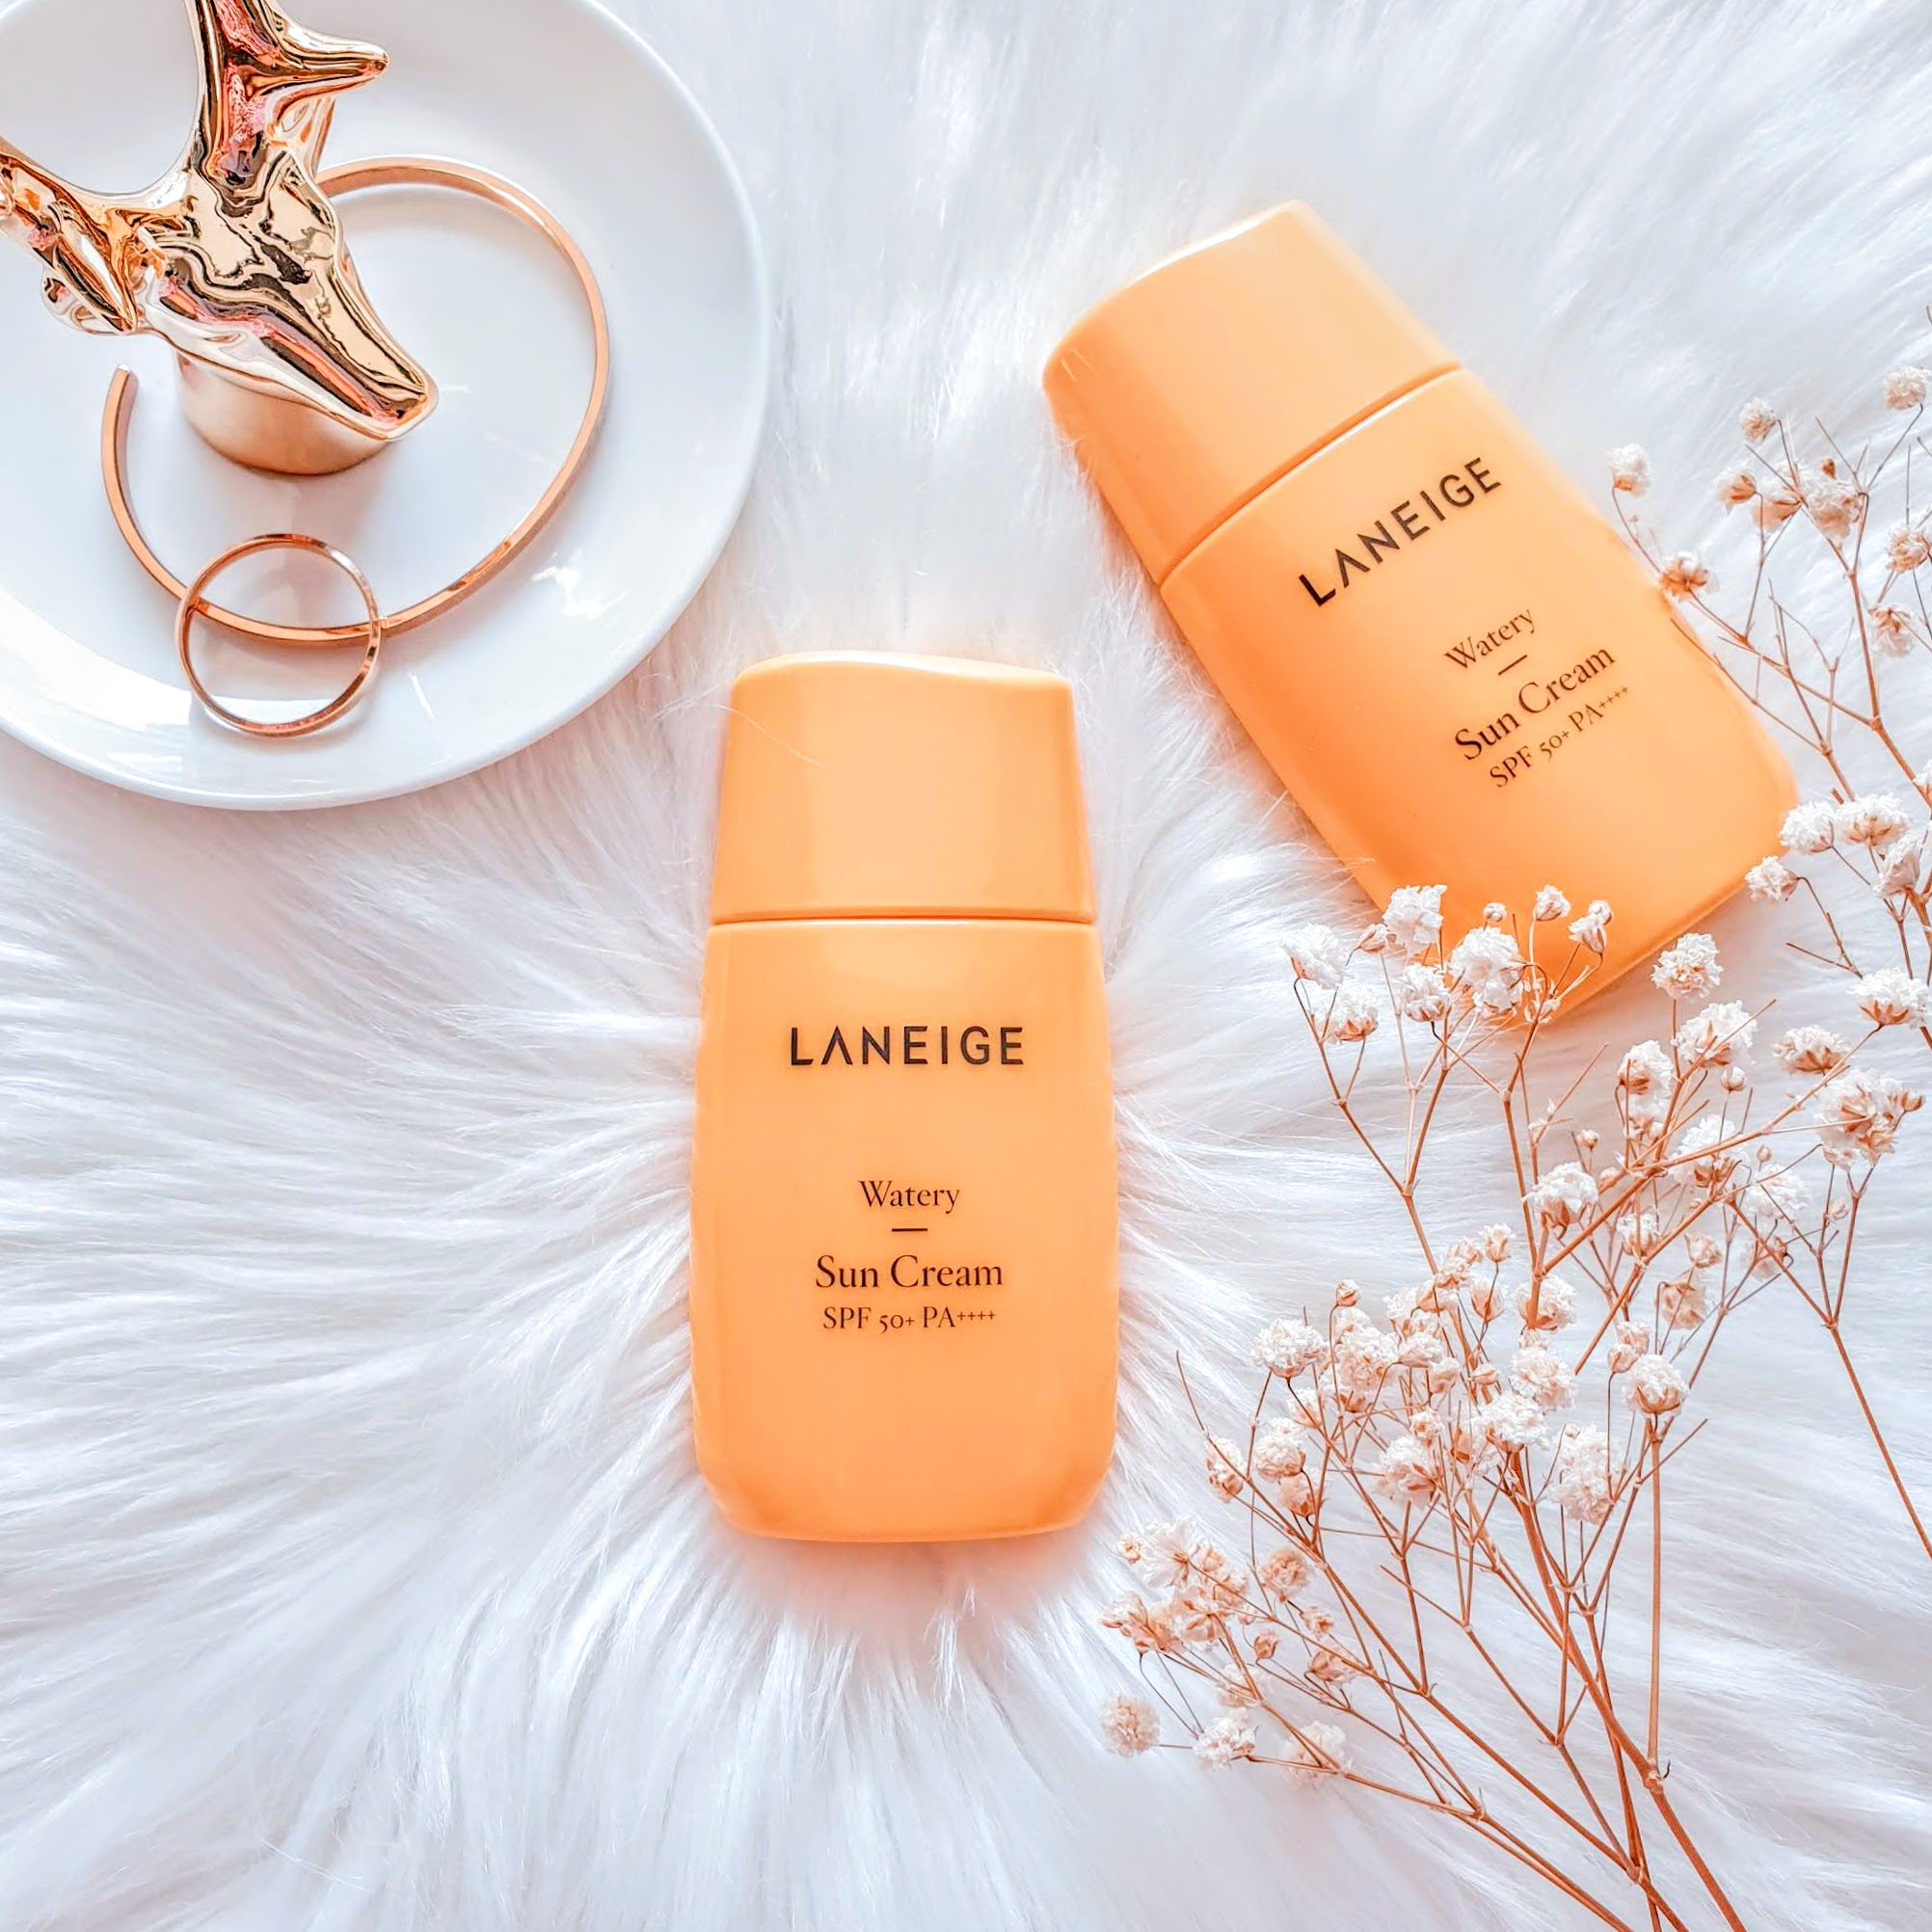 REVIEW | LANEIGE Watery Sun Cream SPF50+ PA++++